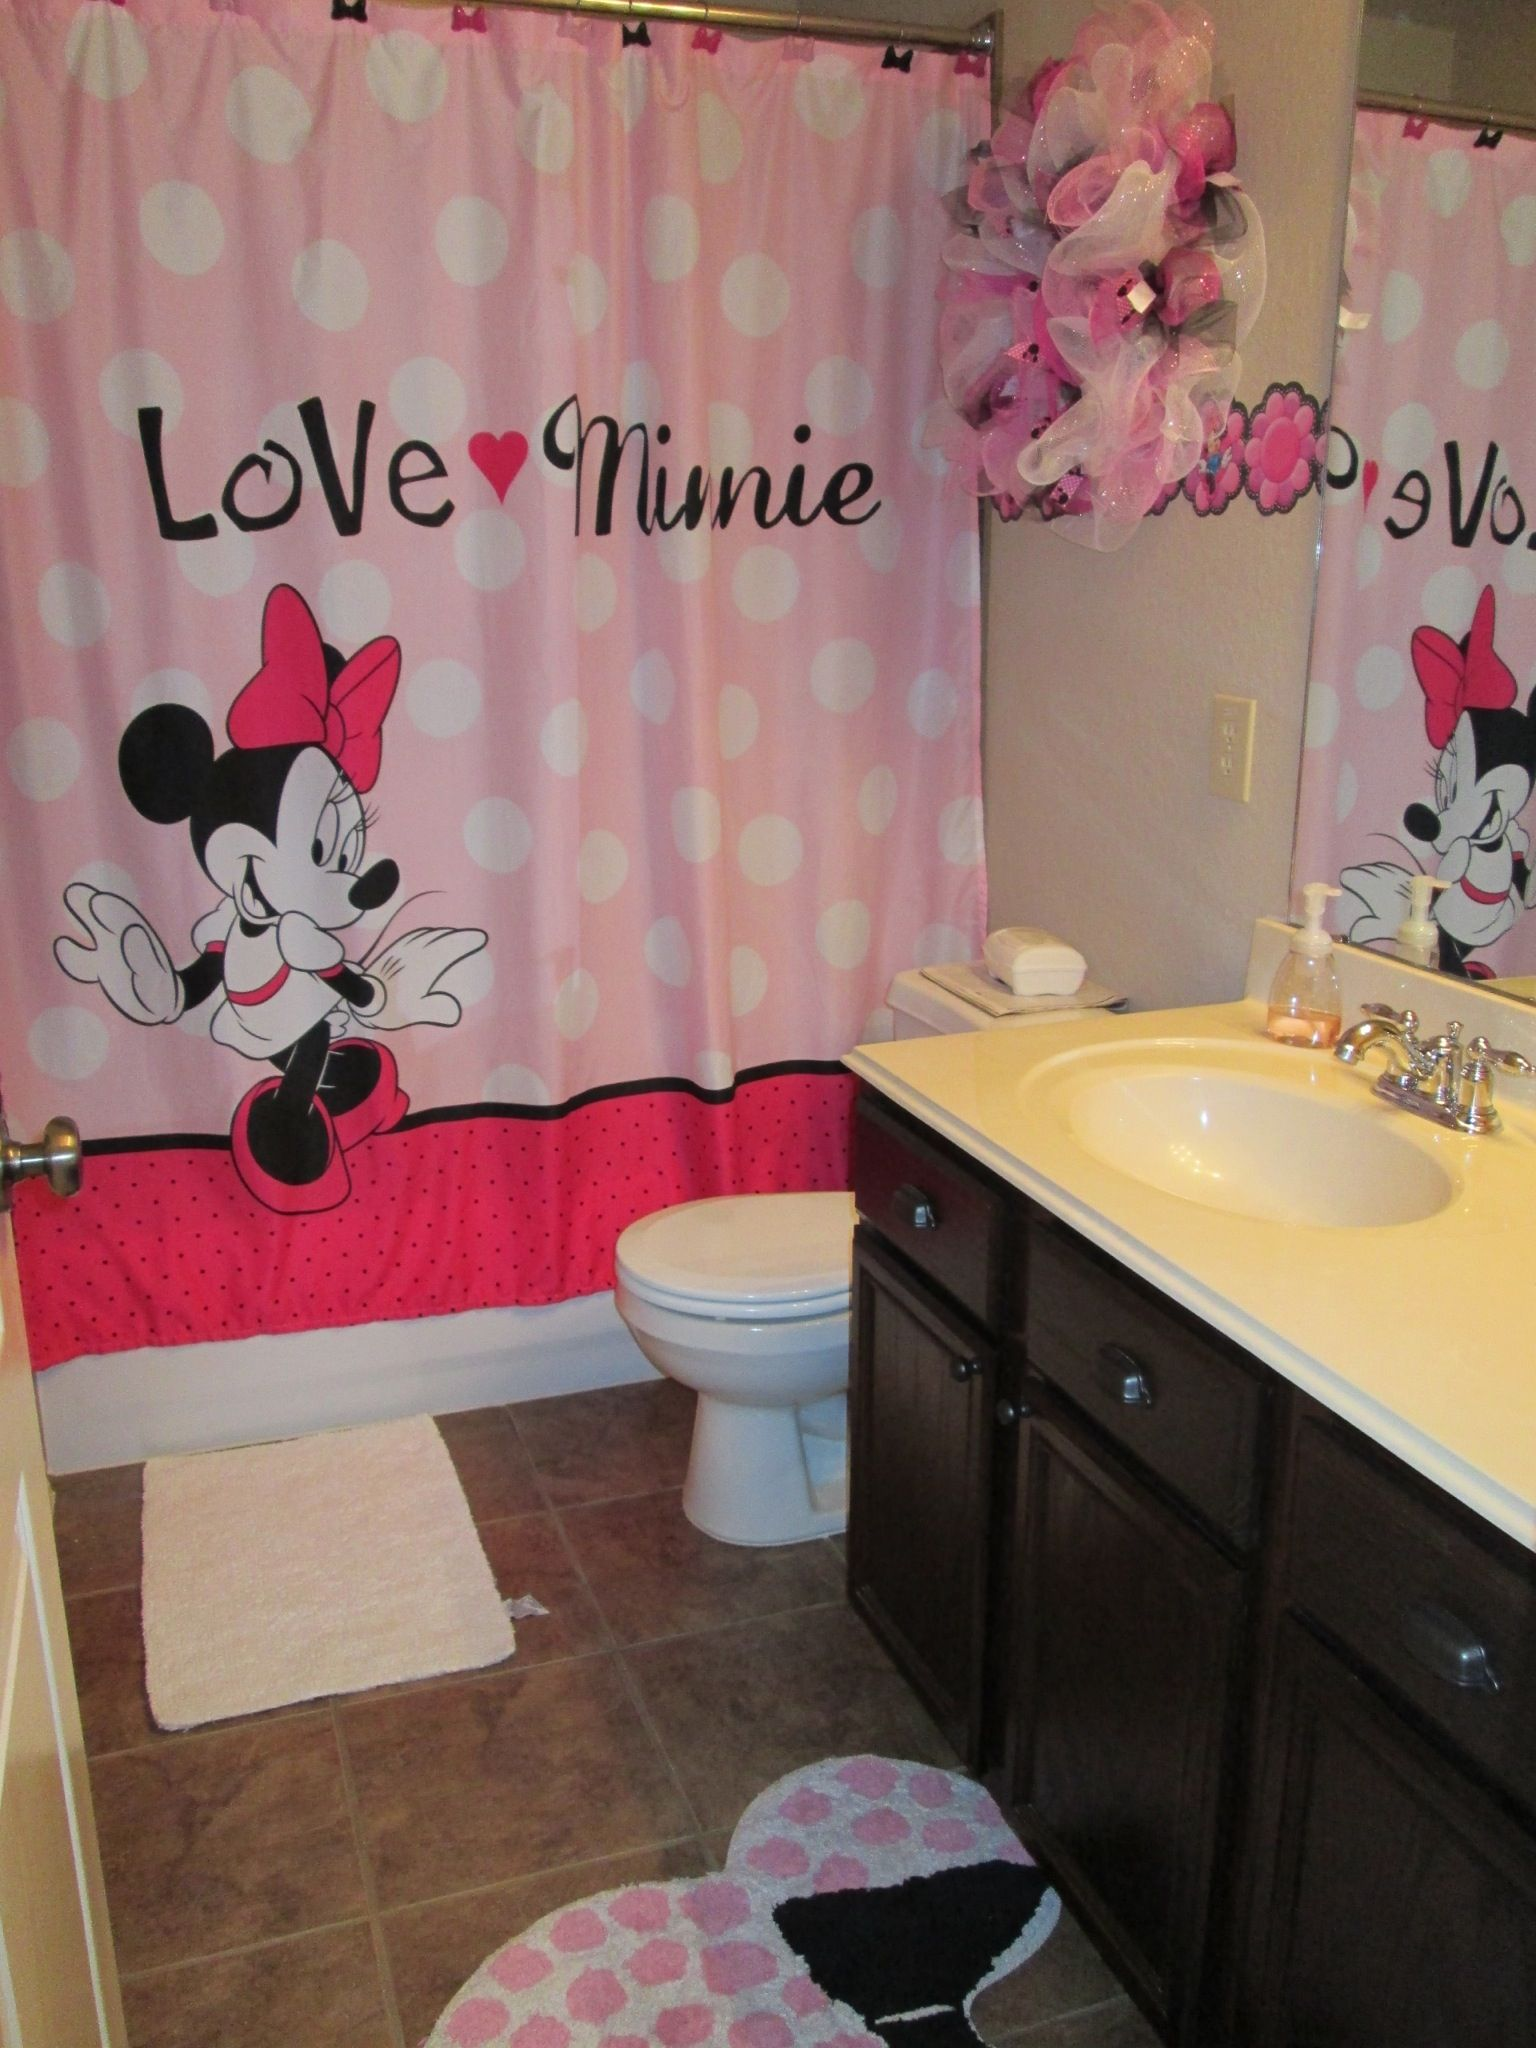 30 Bathroom Sets Design Ideas with Images | Set design, Minnie ...